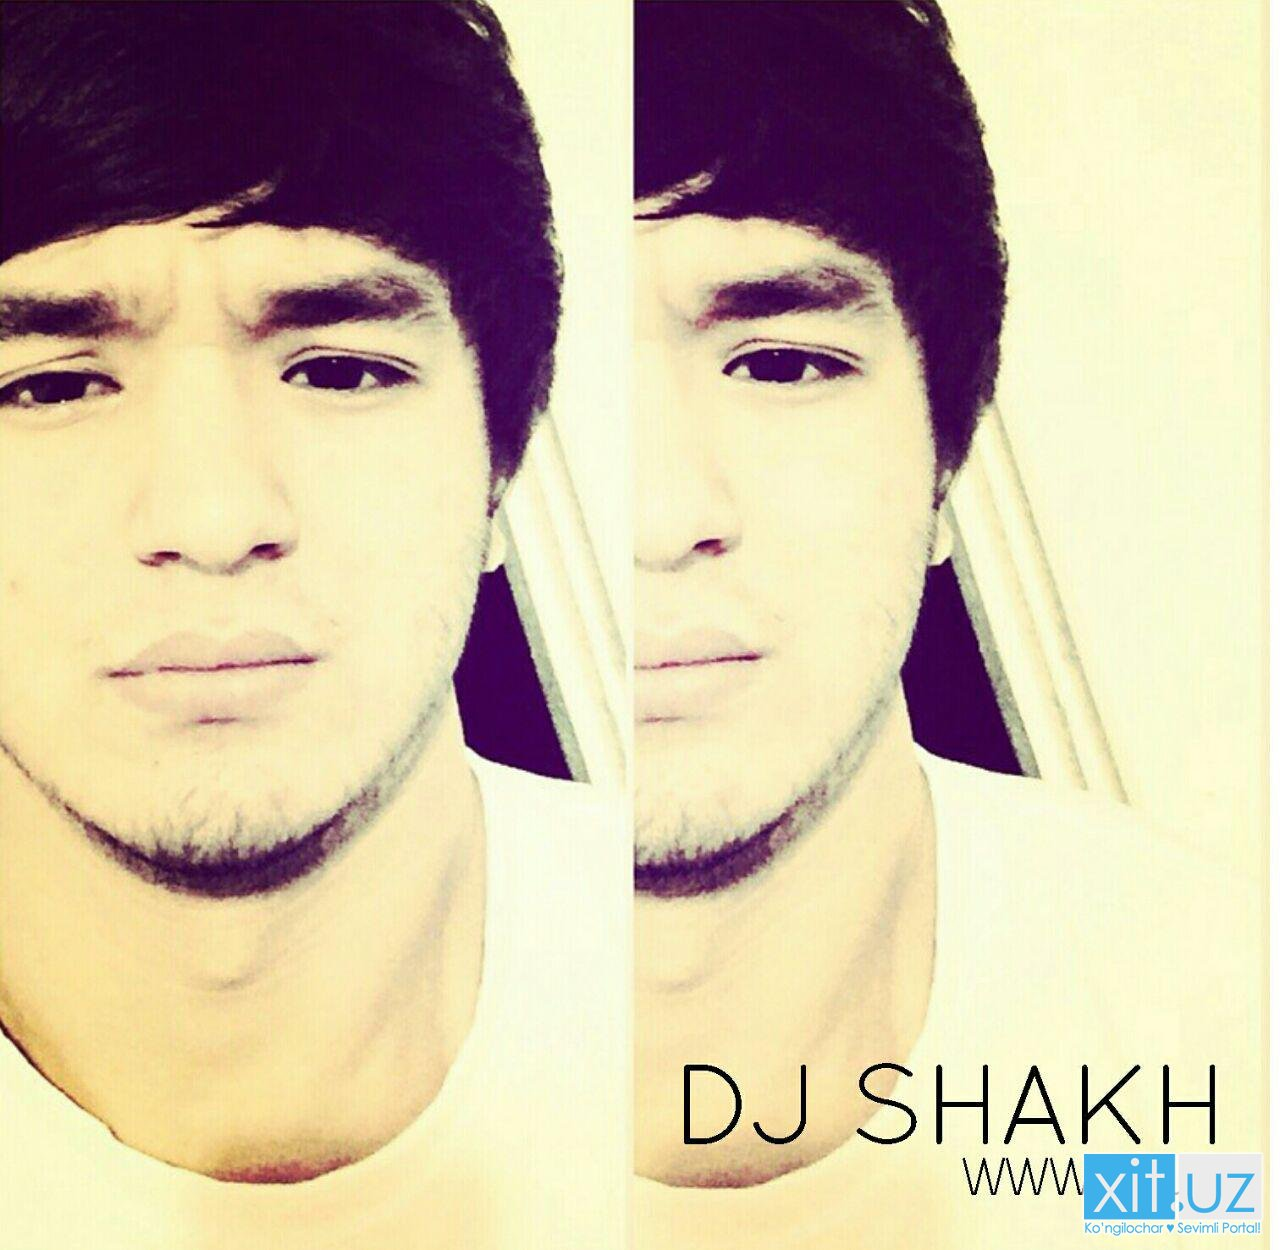 DJ Shakh - F.ck off (Club edit)